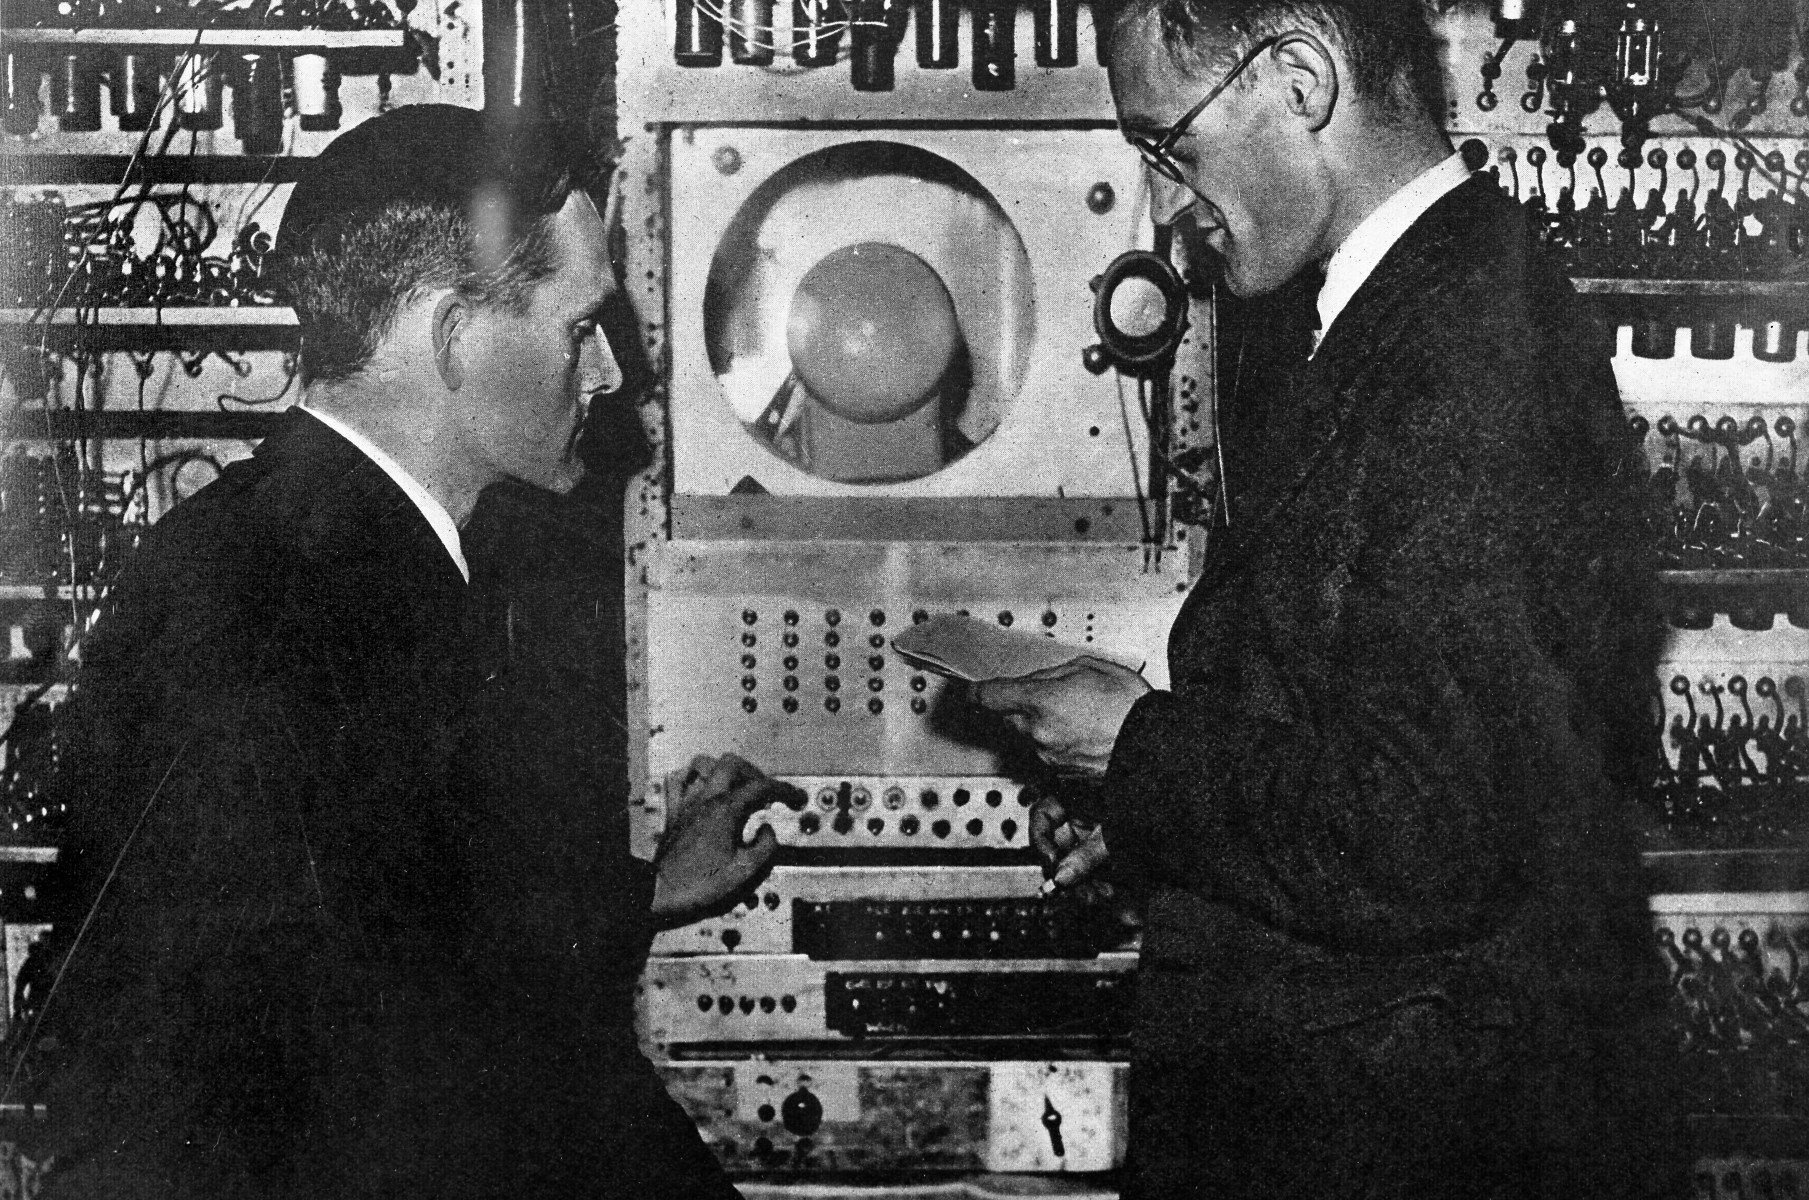 Freddie Williams and Tom Kilburn, the inventors of the Baby shown programming the Manchester Mk 1 computer